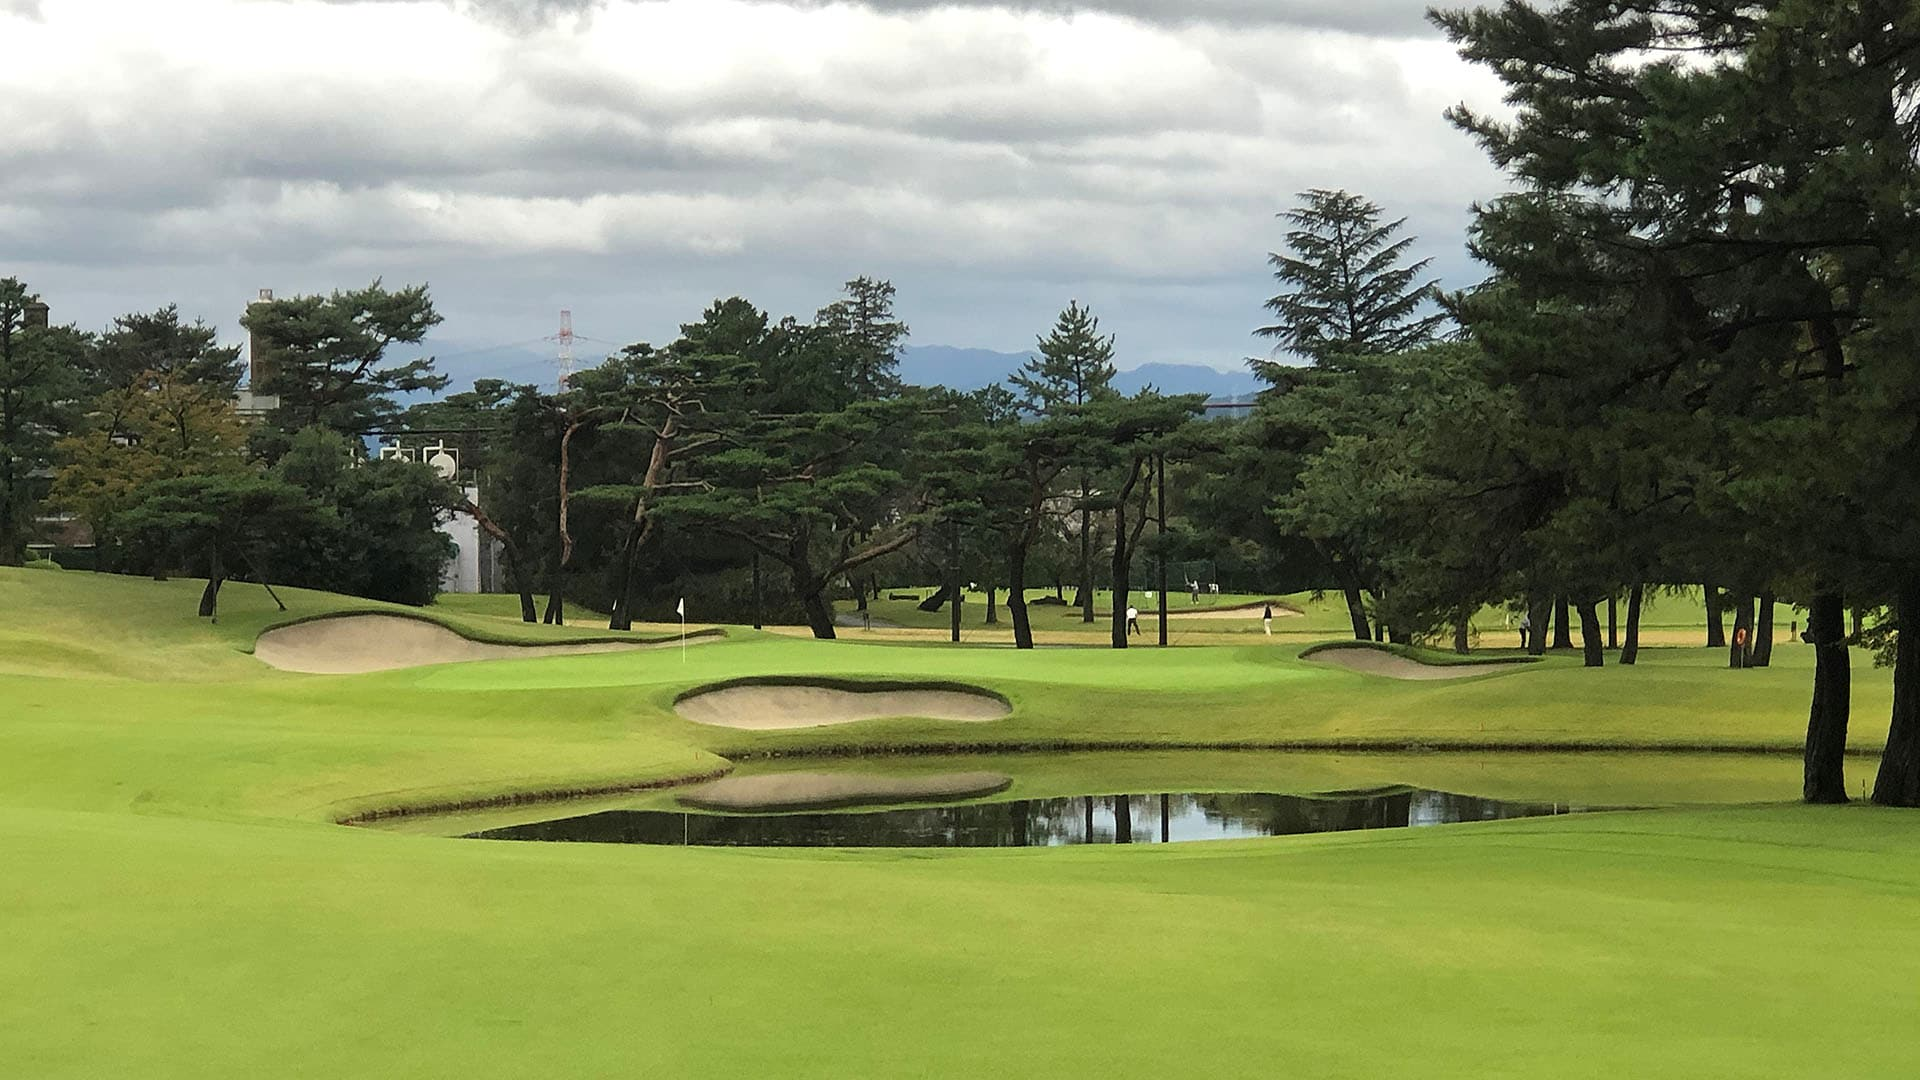 18th hole at Kasumigaseki Country Club